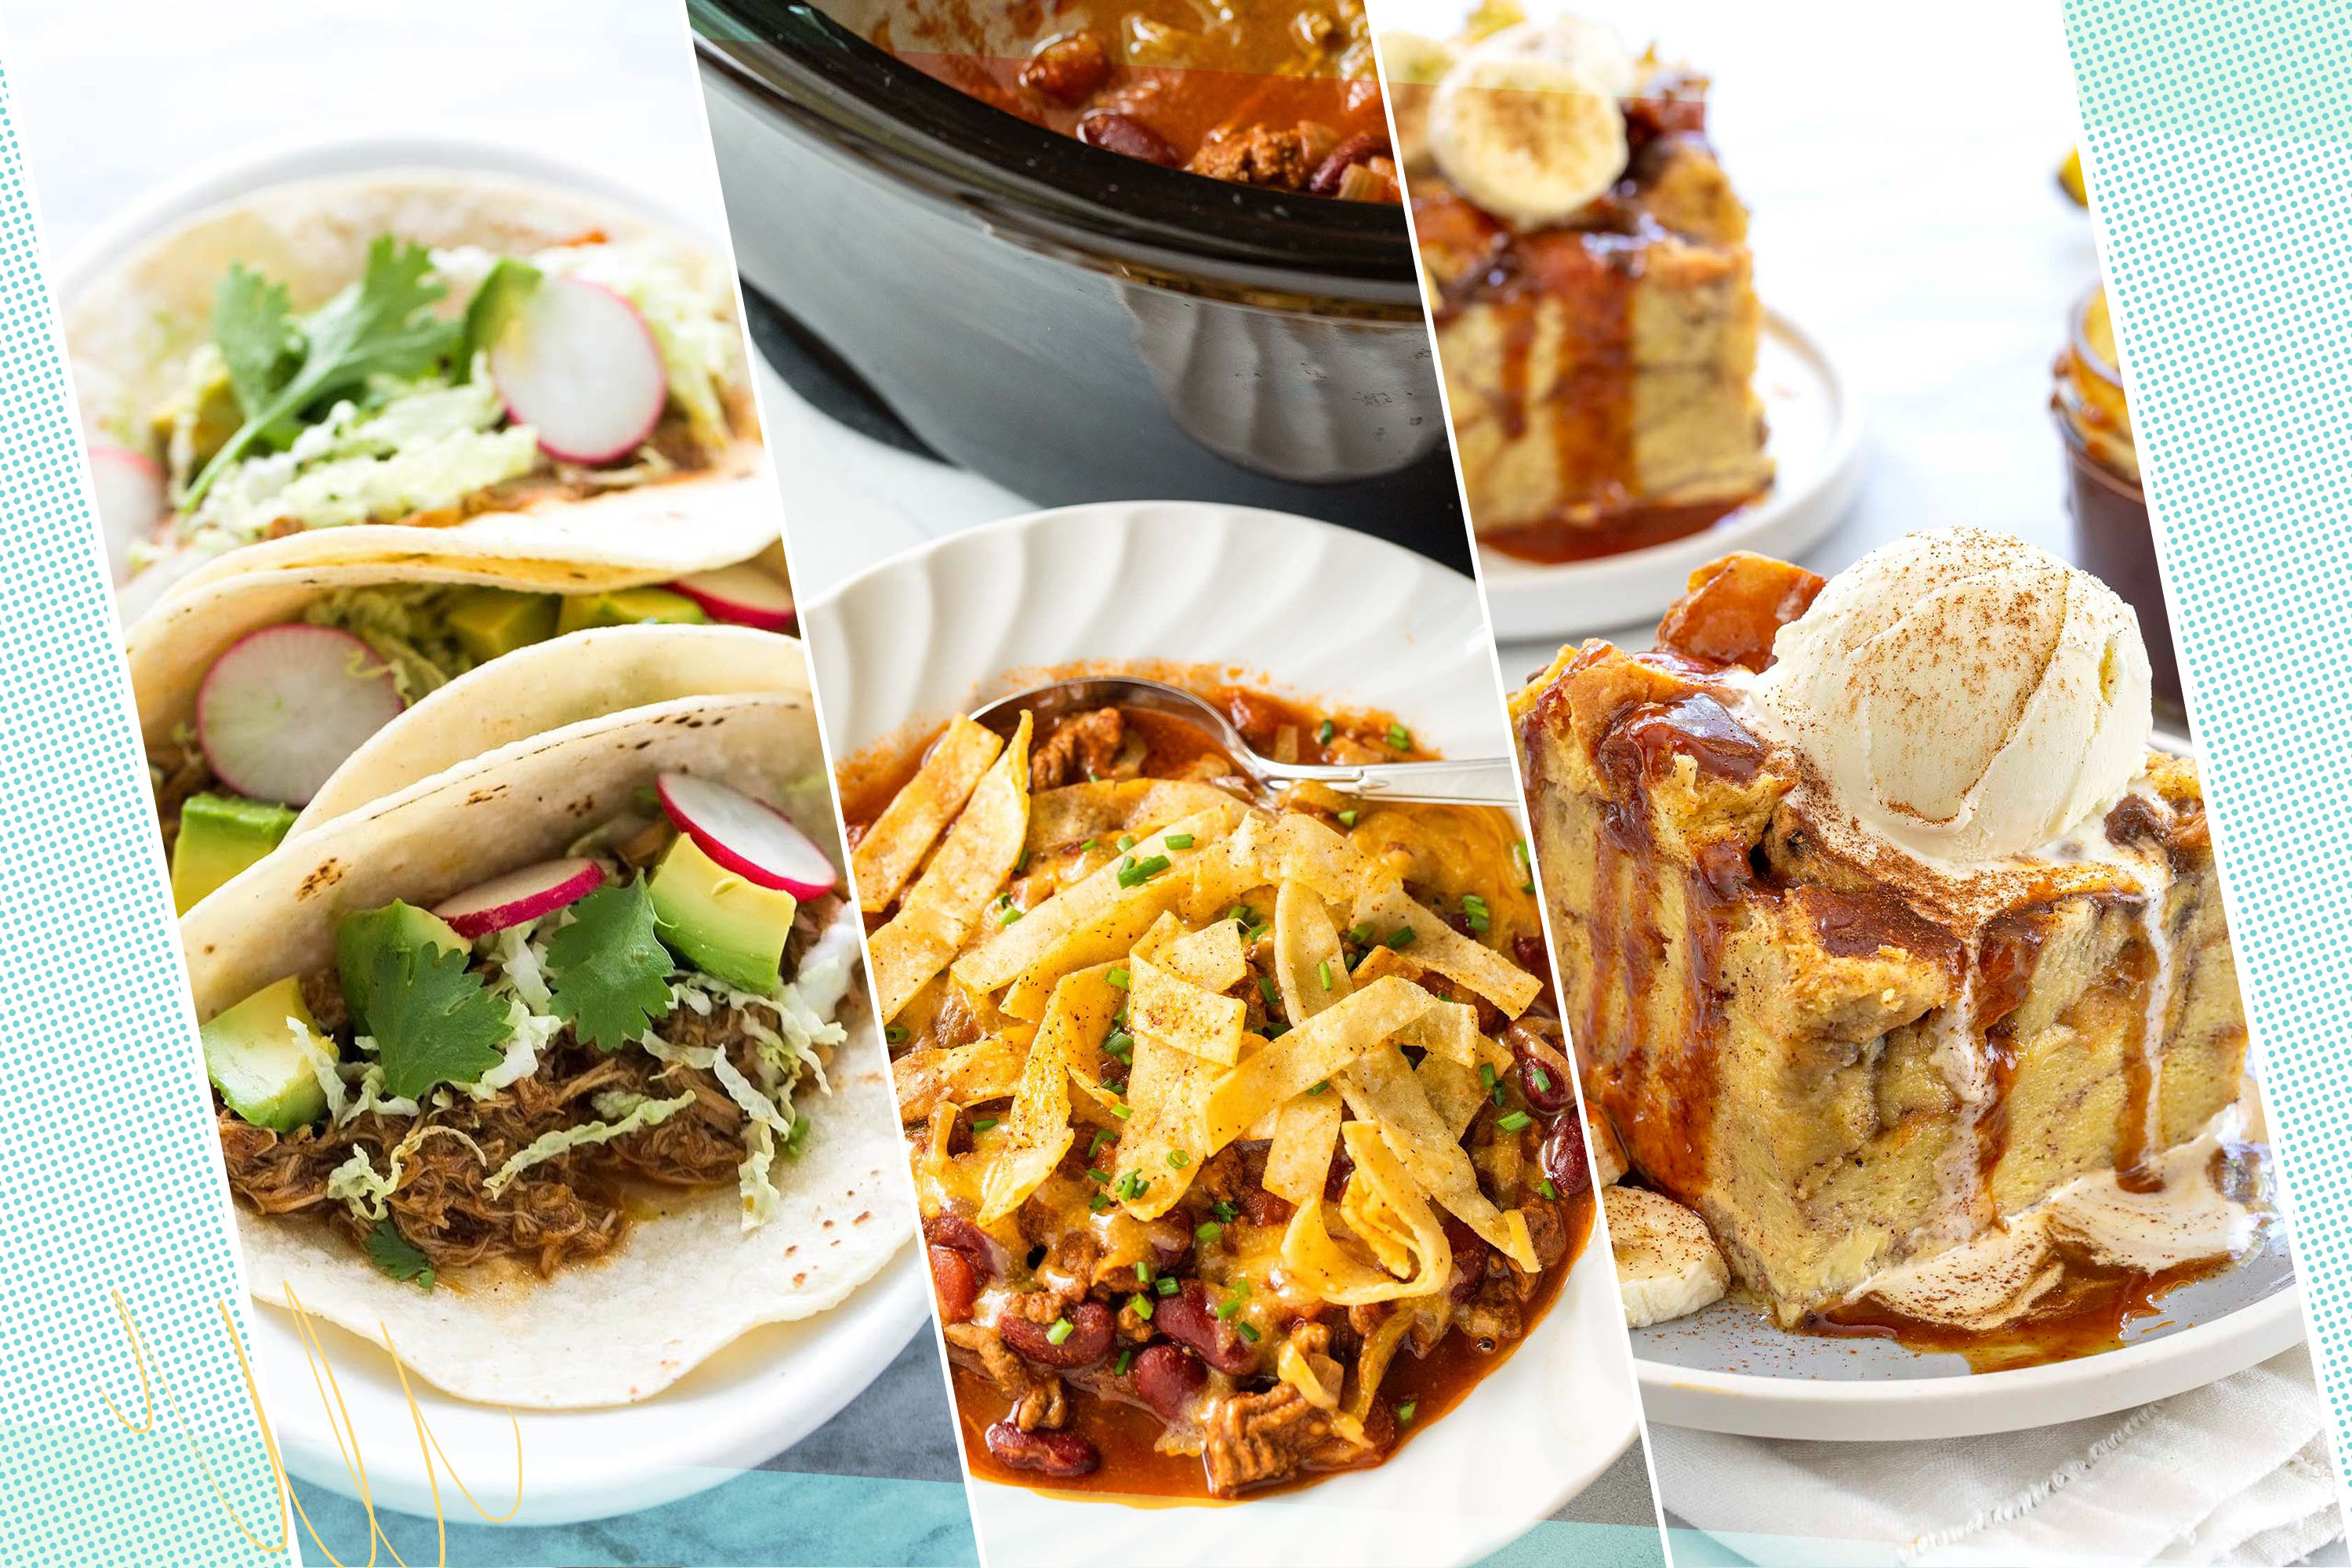 Showstopping Slow Cooker Recipes to Bring to Your Next Potluck